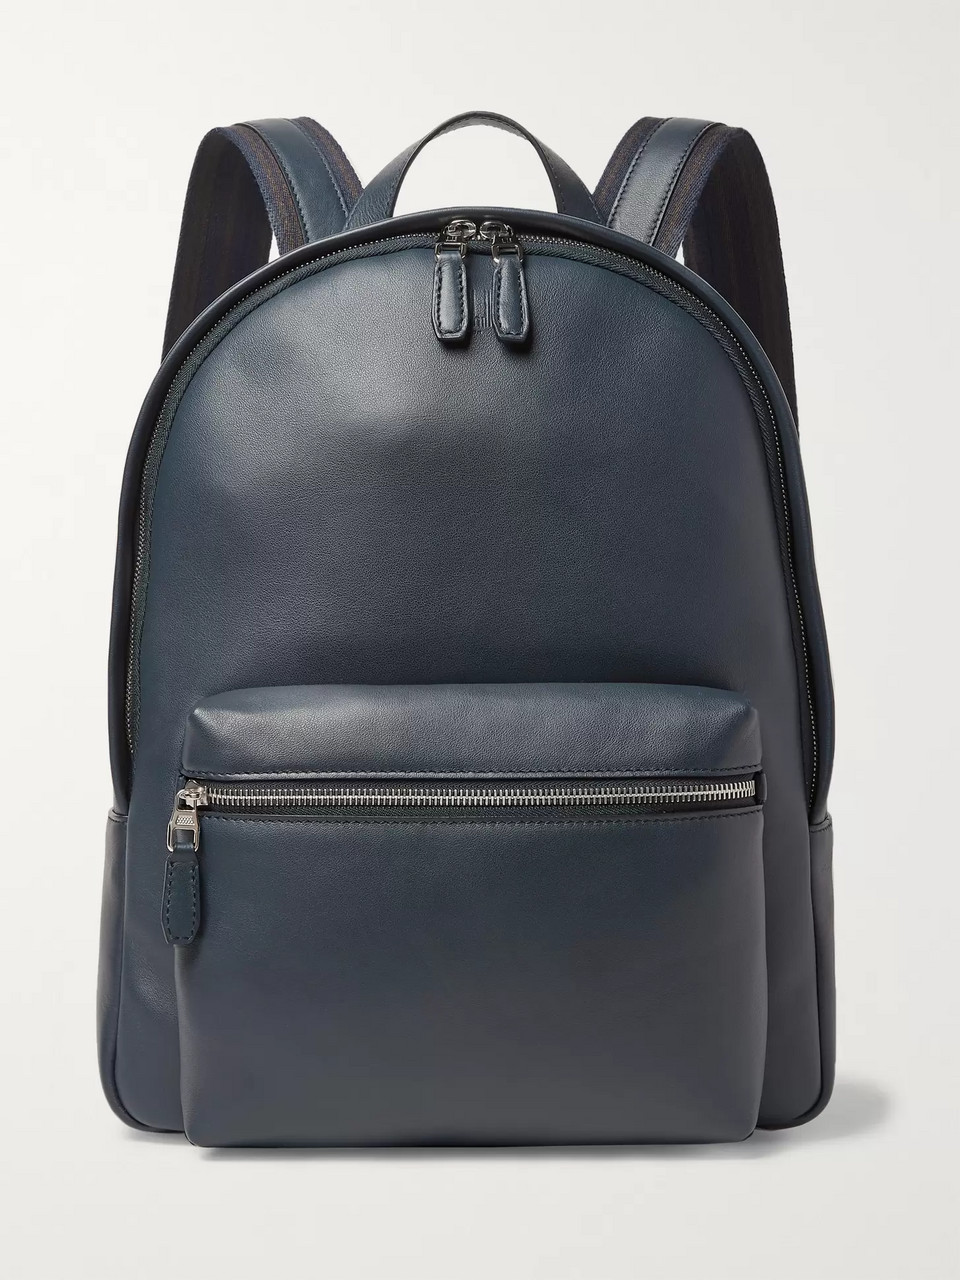 Dunhill Hampstead Canvas-Panelled Full-Grain Leather Backpack